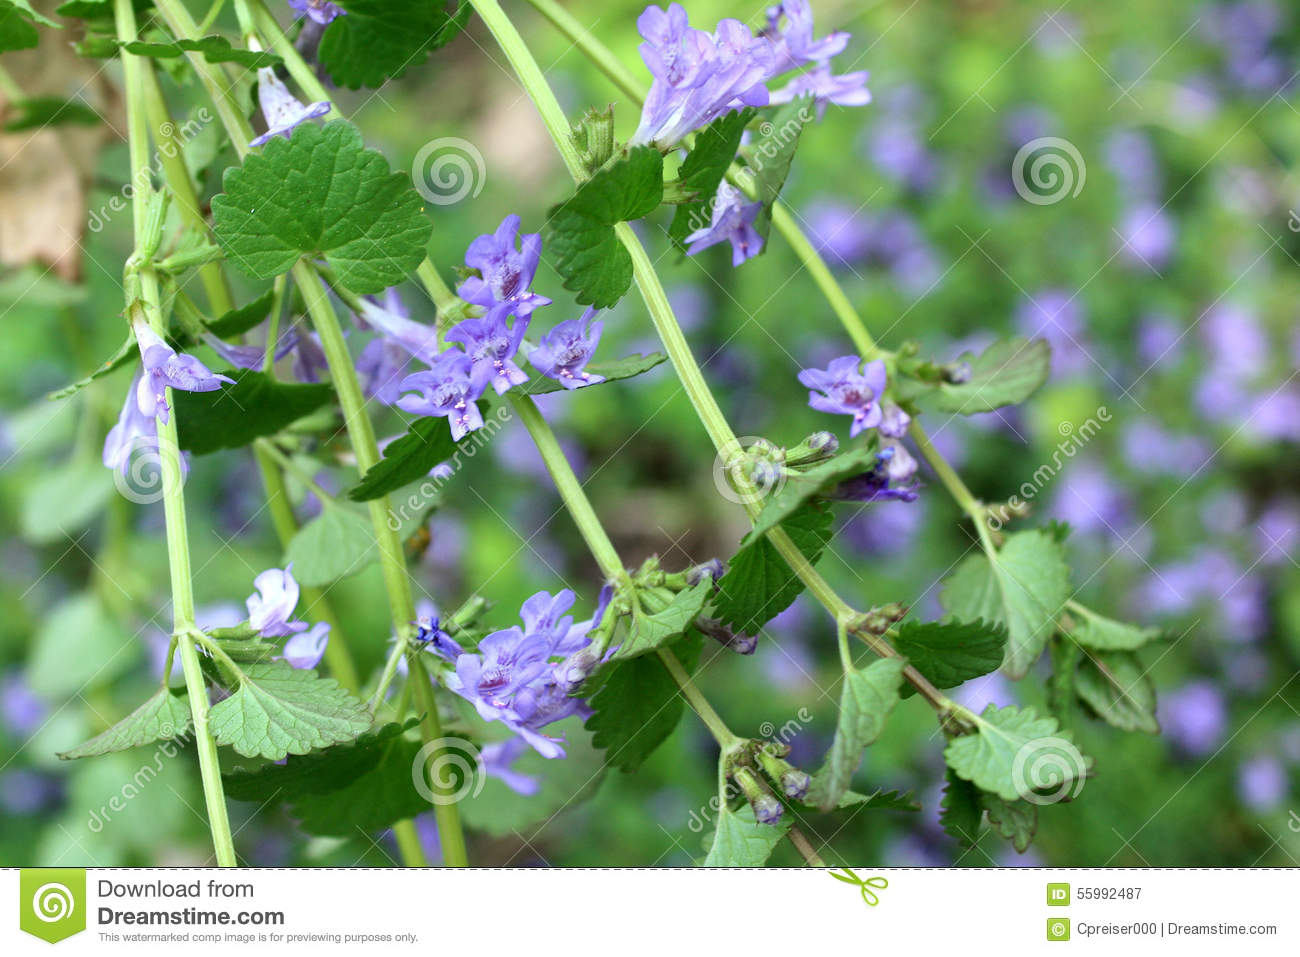 Glechoma Hederacea / Creeping Charlie Stock Photo.